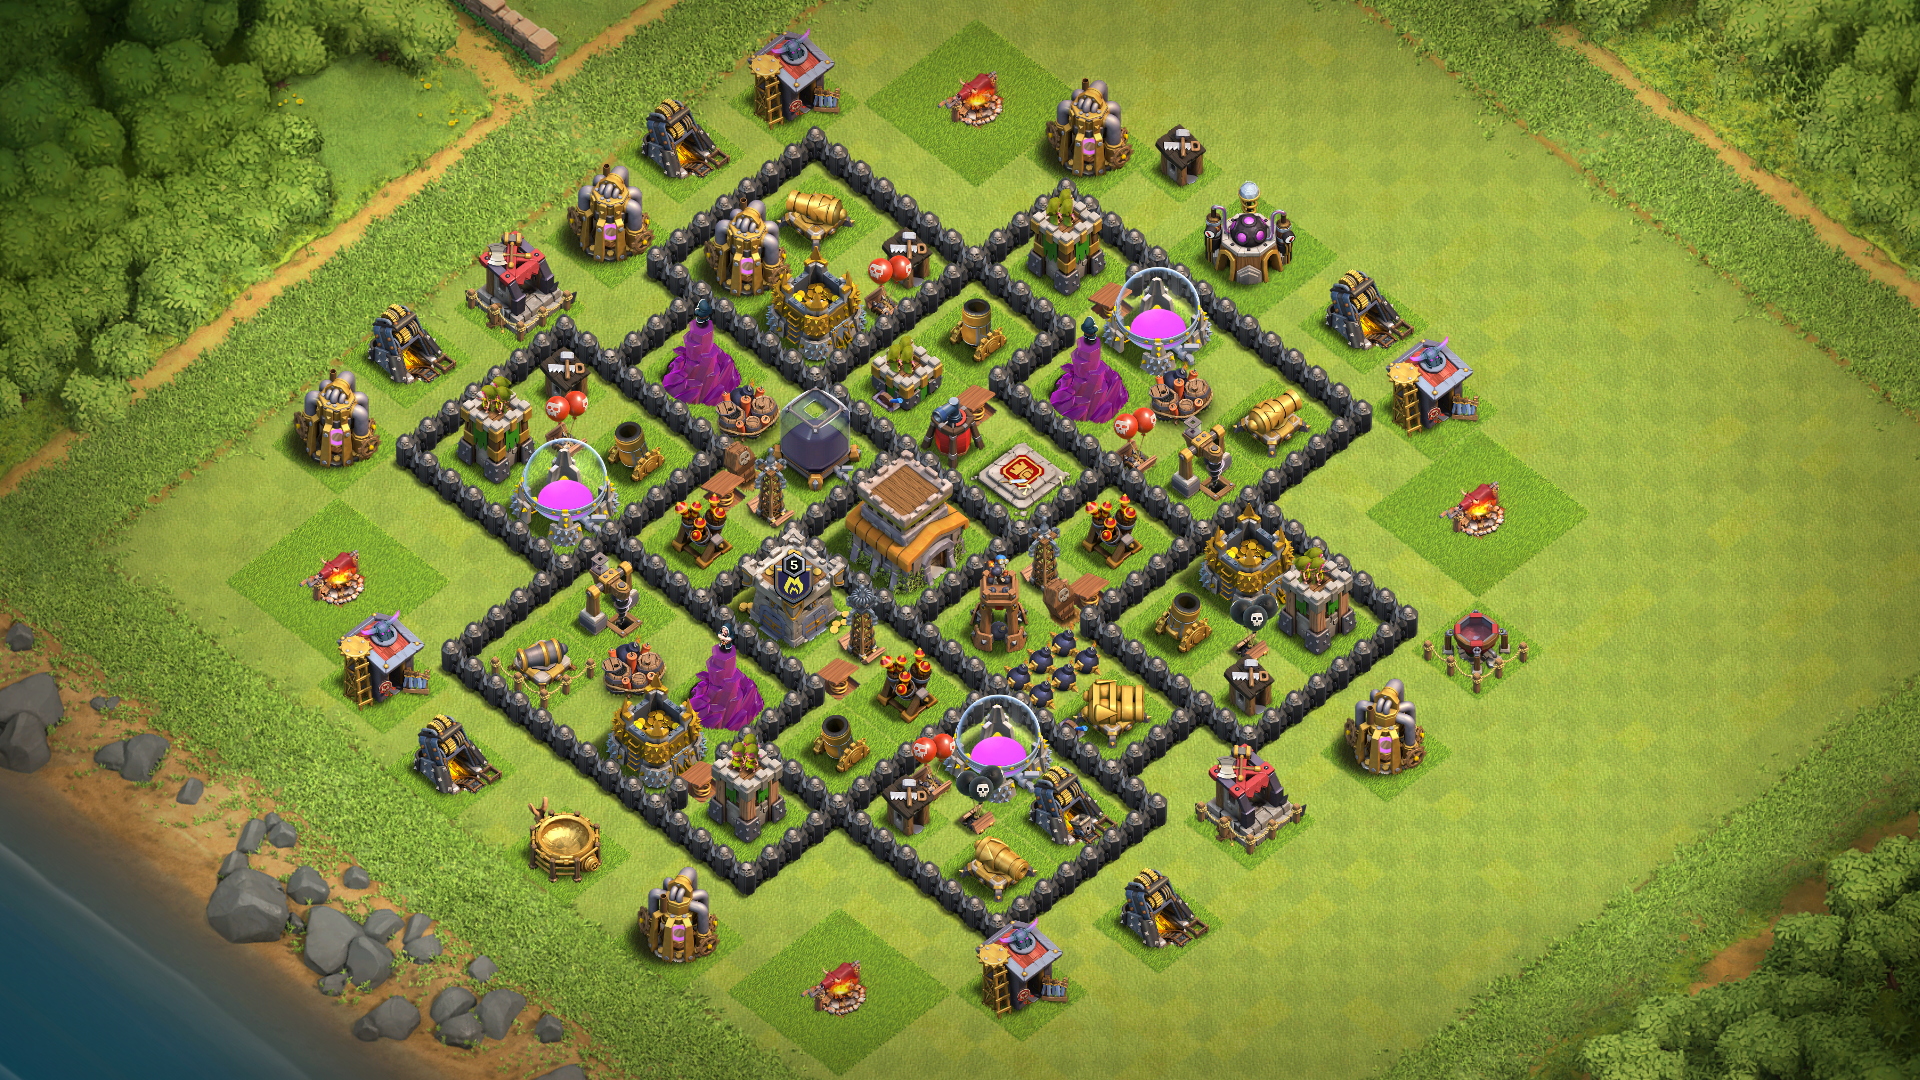 Coc Th8 Best Base Layout 2